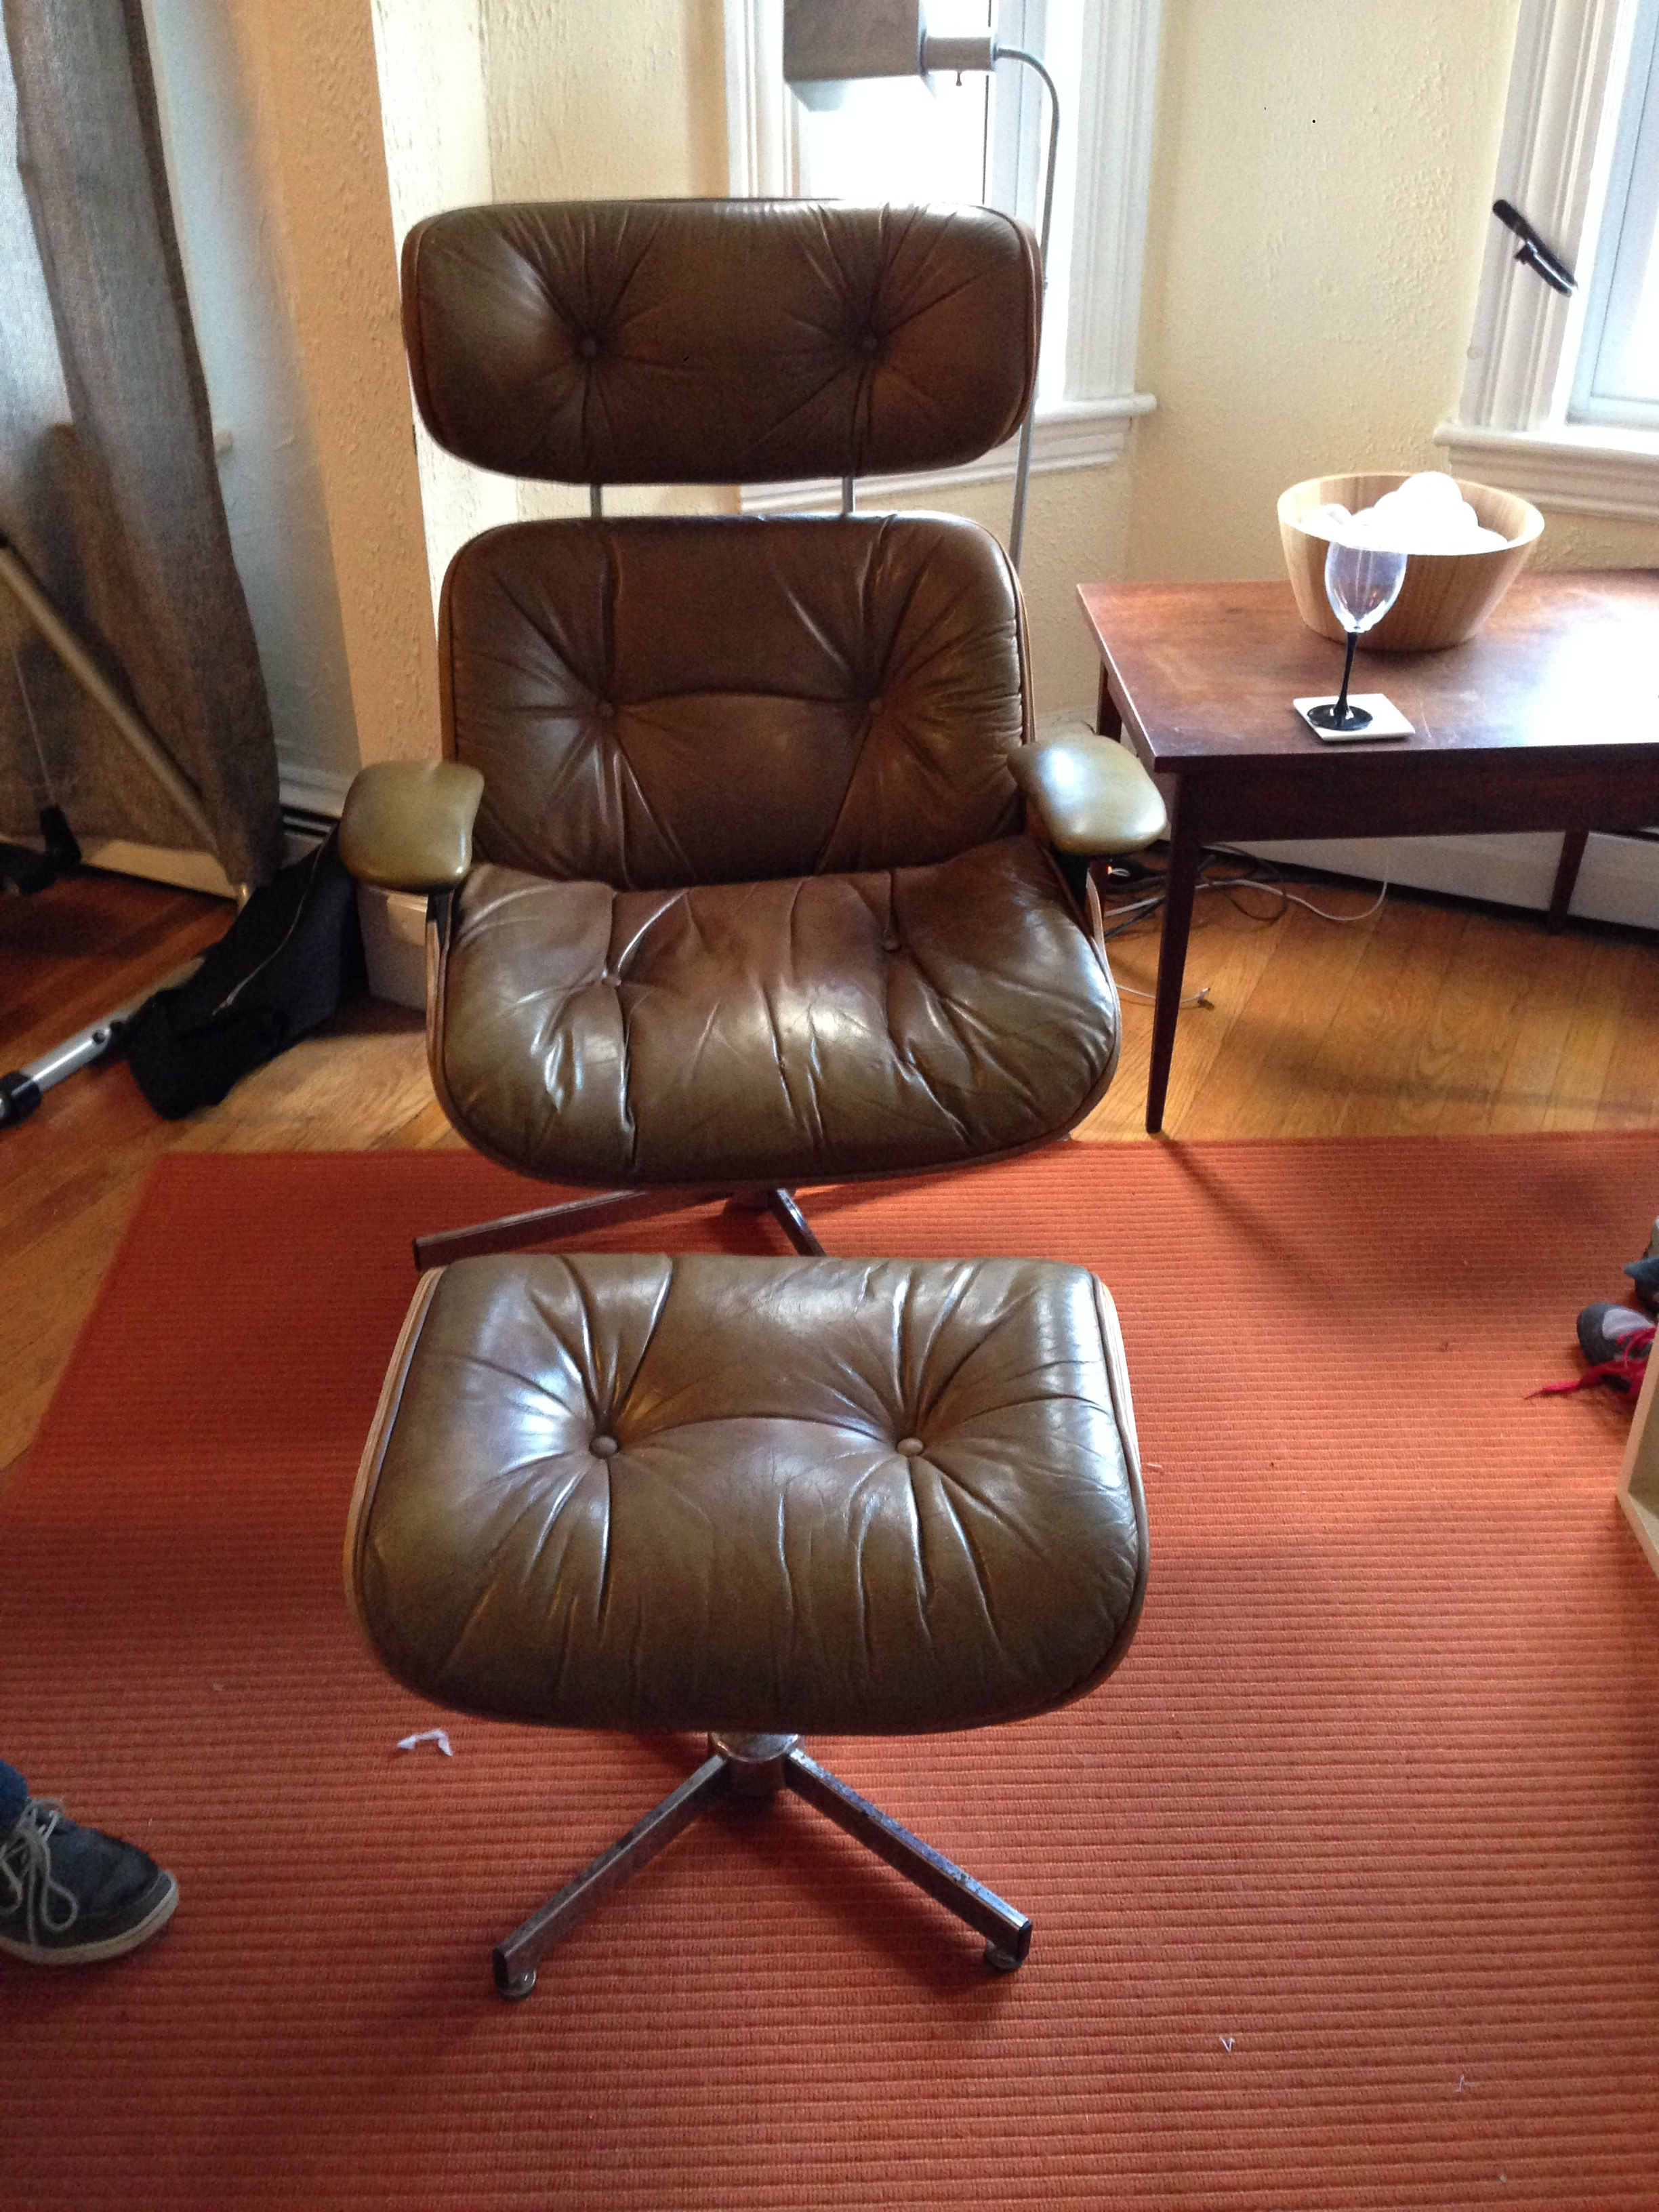 Merveilleux I Found 2 Of These Matching Early 60u0027s Selig Plycraft Chairs With Ottomans  On Craigslist For Super Cheap. I Have Always Wanted An Old Eames Lounge  Chair But ...